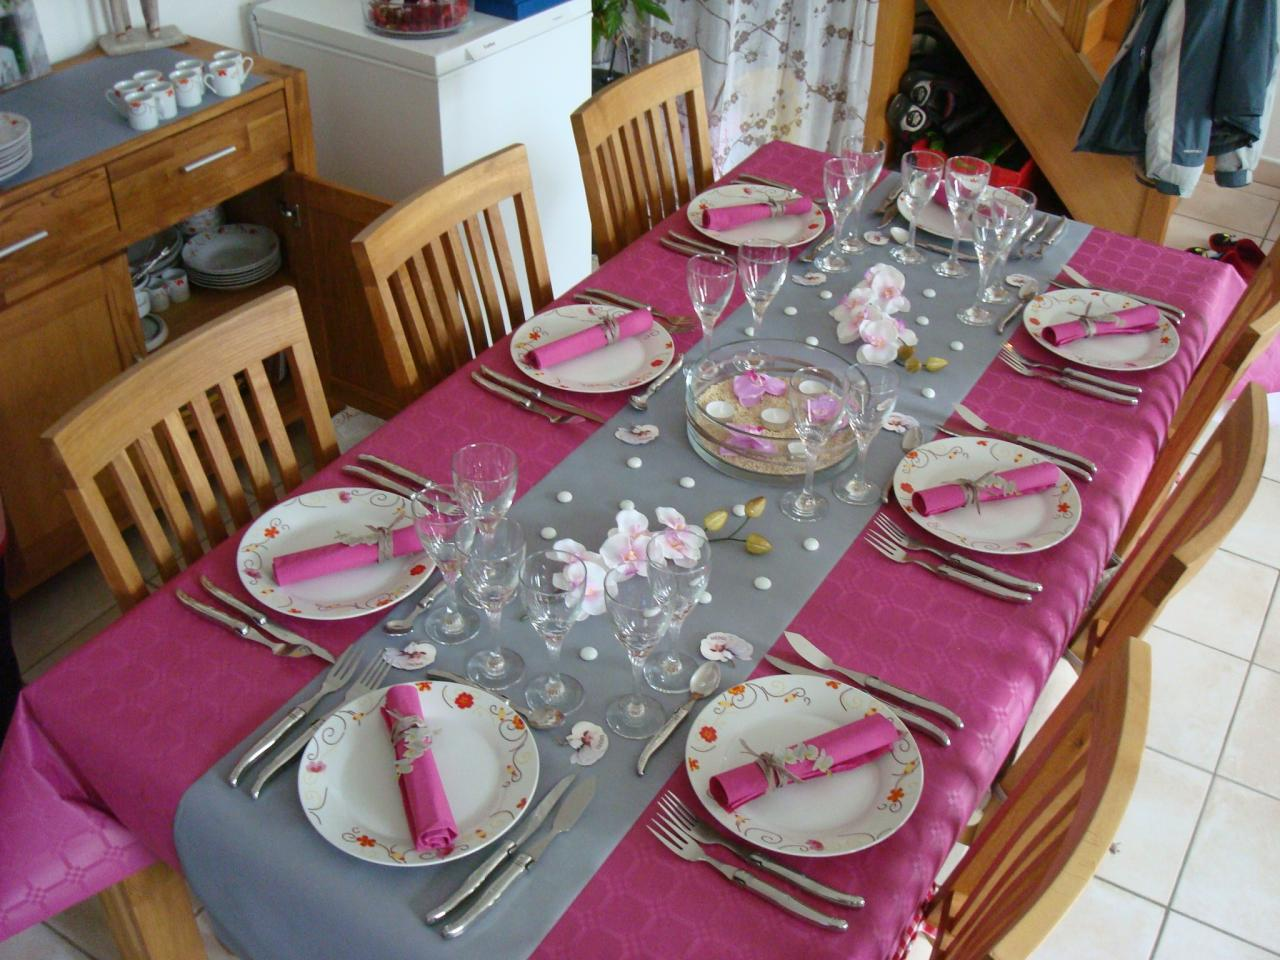 Photos bild galeria d coration de table pour anniversaire - Idee de deco de table ...